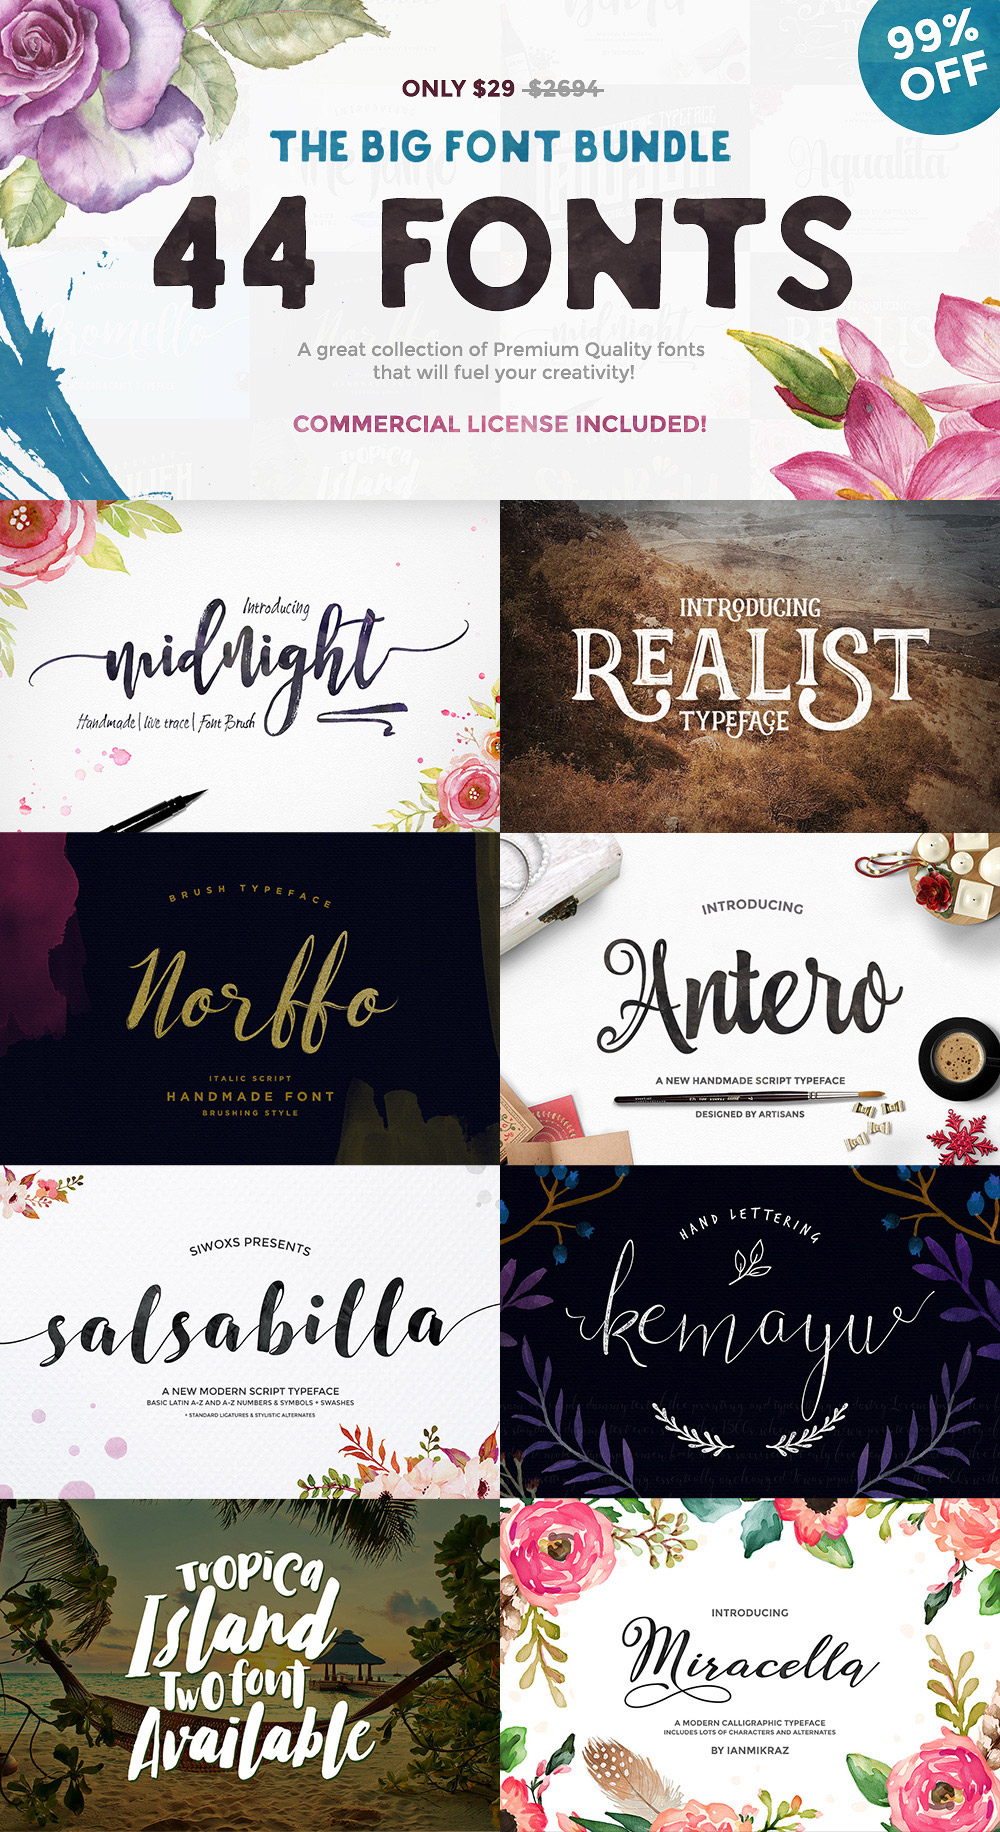 The Big Font Bundle